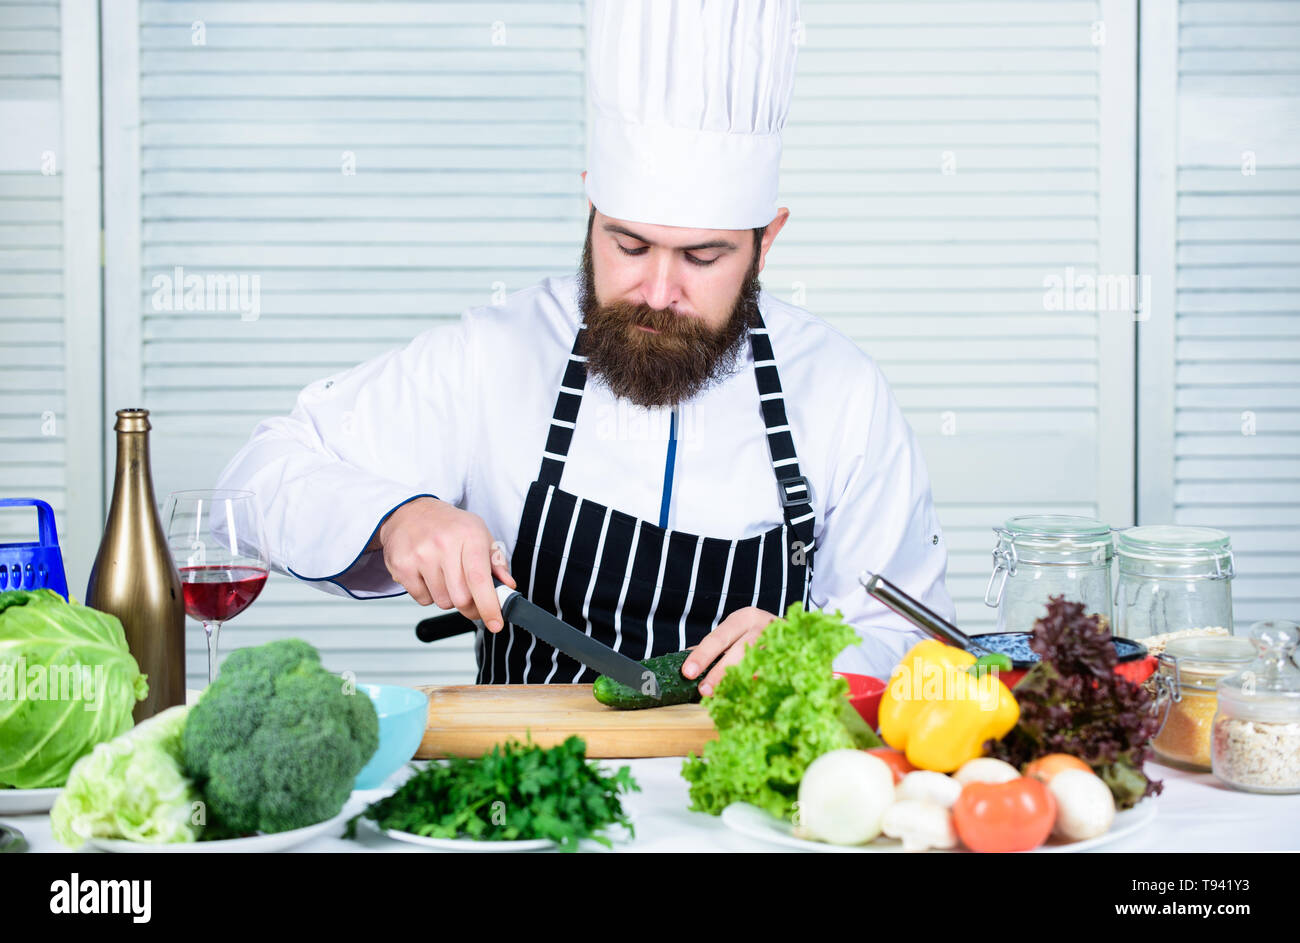 According to recipe. Prepare ingredient for cooking. Useful for significant amount of cooking methods. Basic cooking processes. Man master chef or amateur cooking food. Sharp knife chopping vegetable. - Stock Image